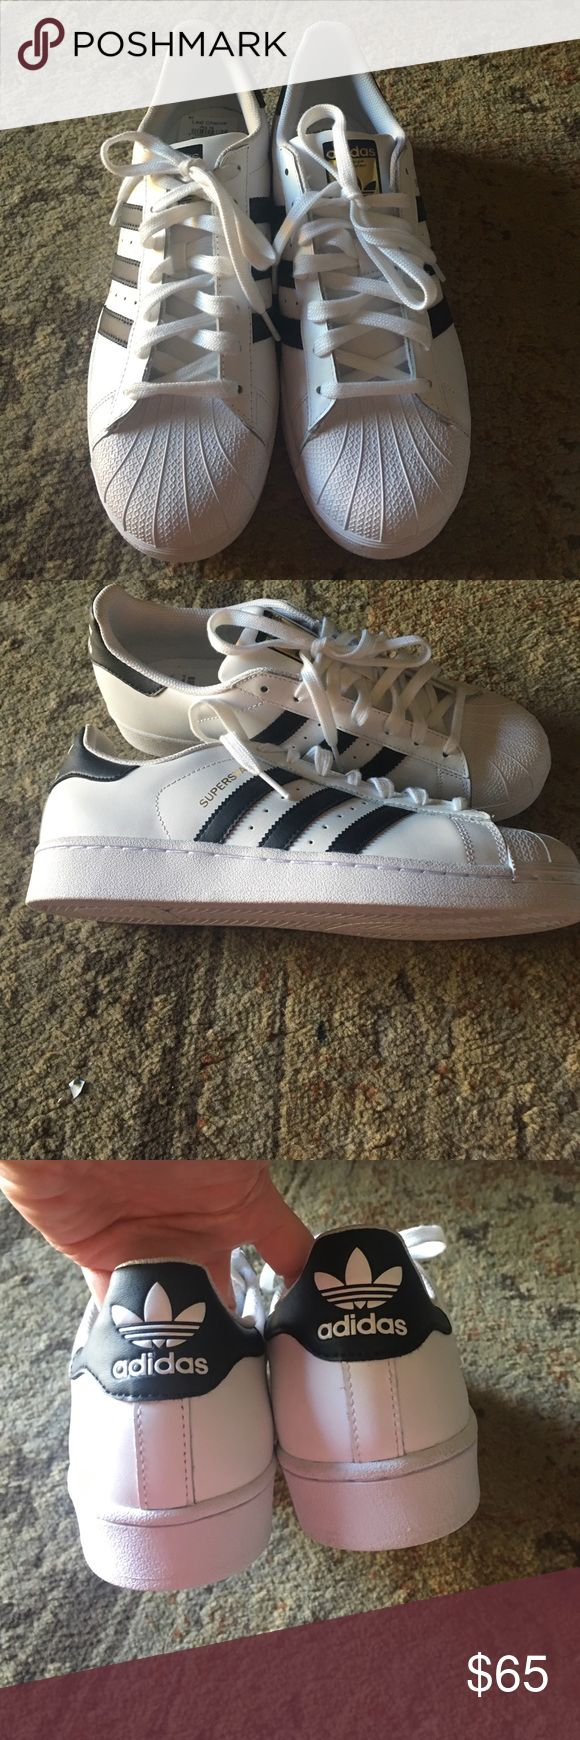 NEW Adidas superstars Brand new never even worn Adidas superstars for men size 8 for additional pics just ask adidas Shoes Sneakers